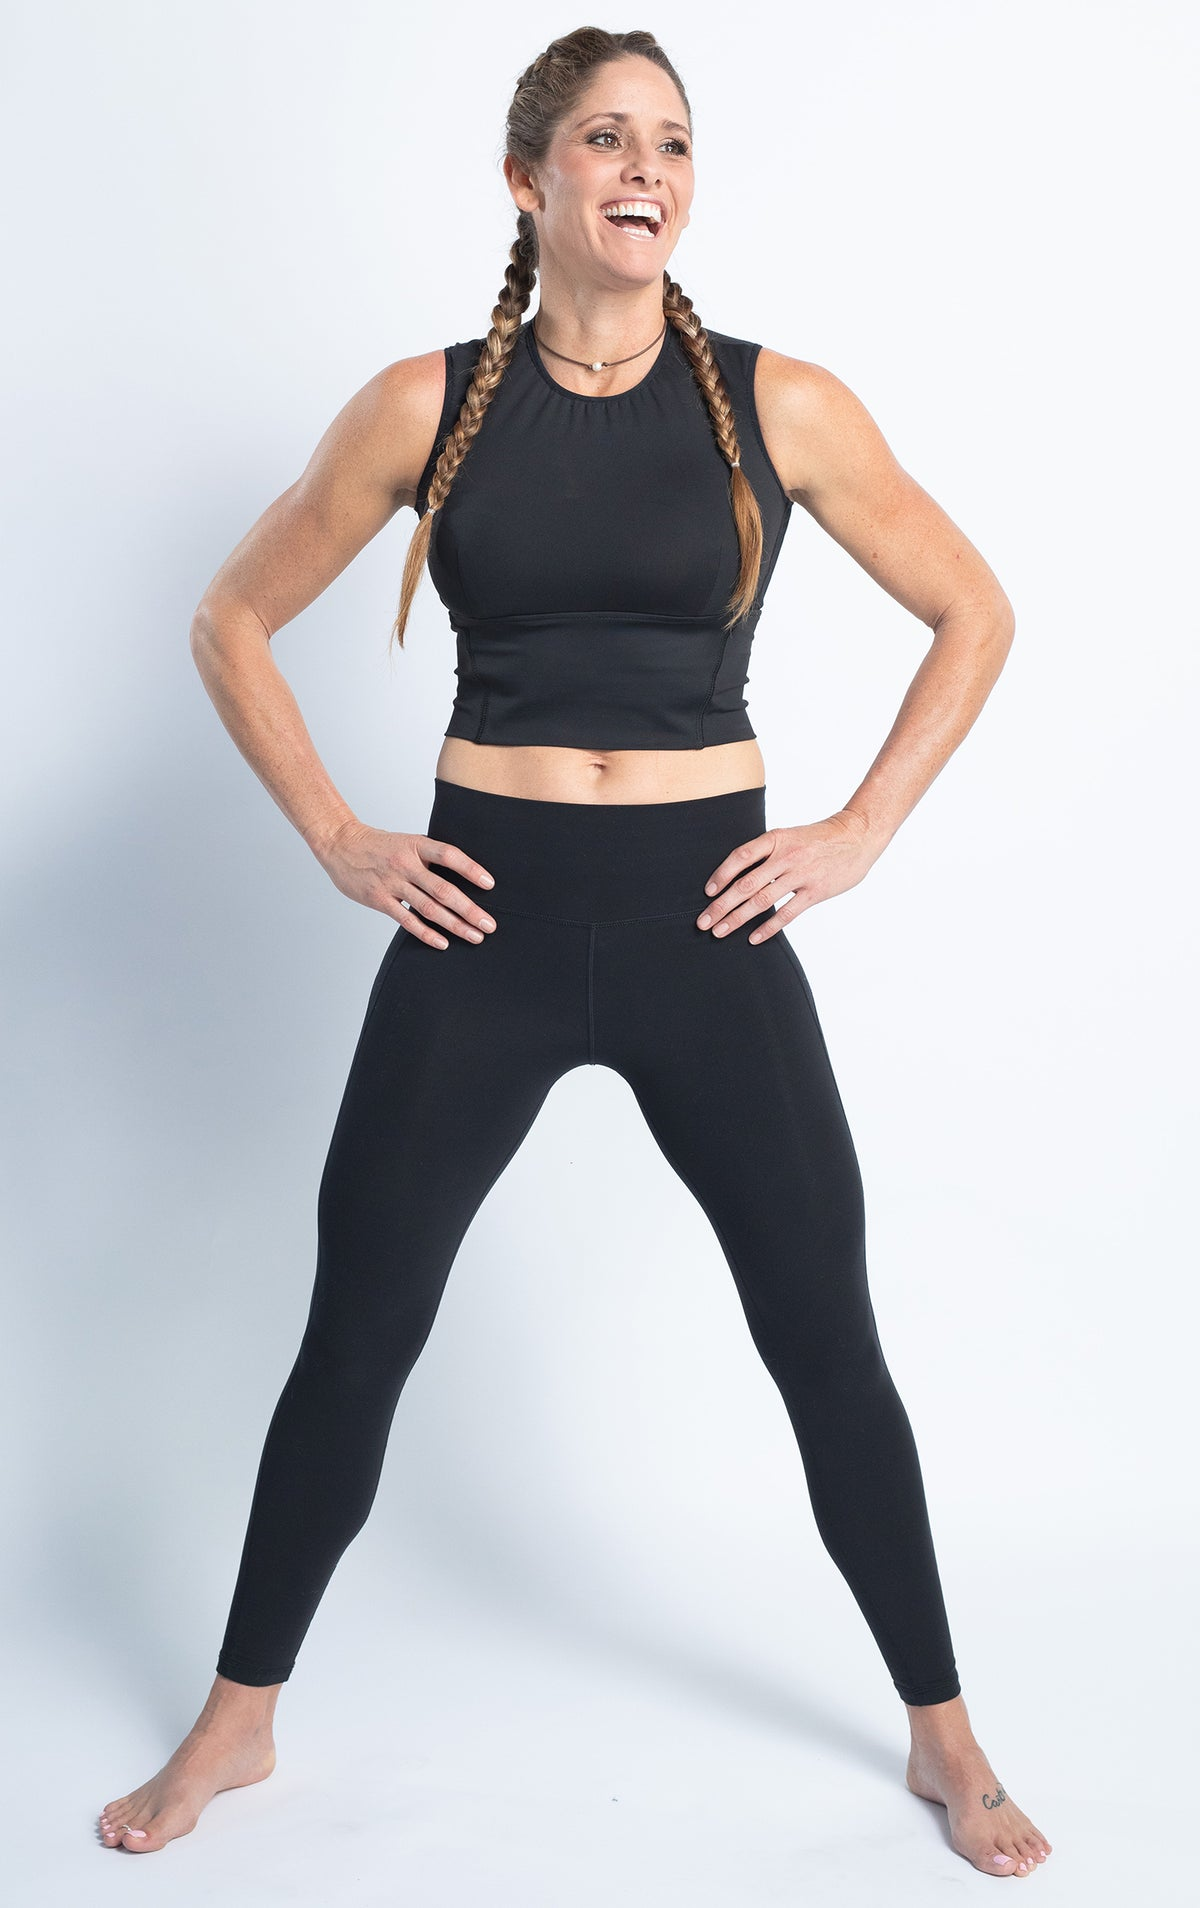 Lycra Legging high rise leggings. black tummy control yoga pants